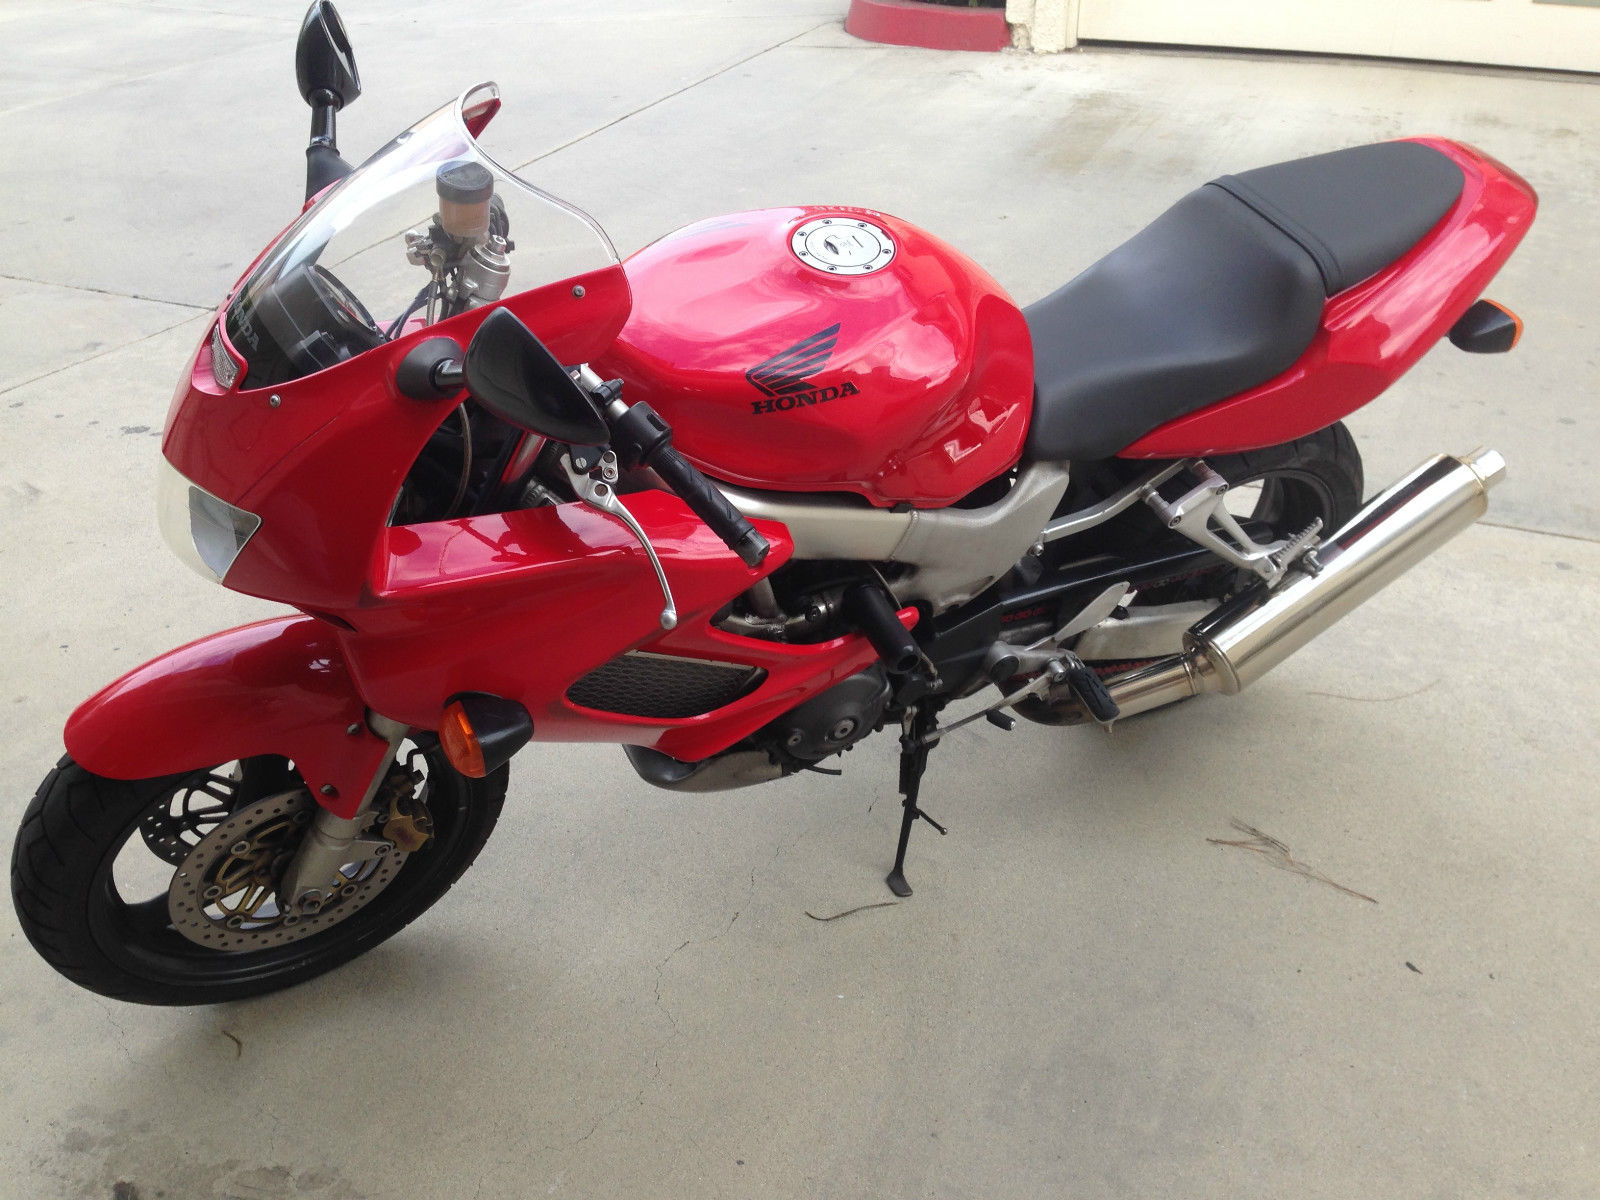 1998 Honda Vtr1000 Superhawk V Twin Sportbike Very Clean